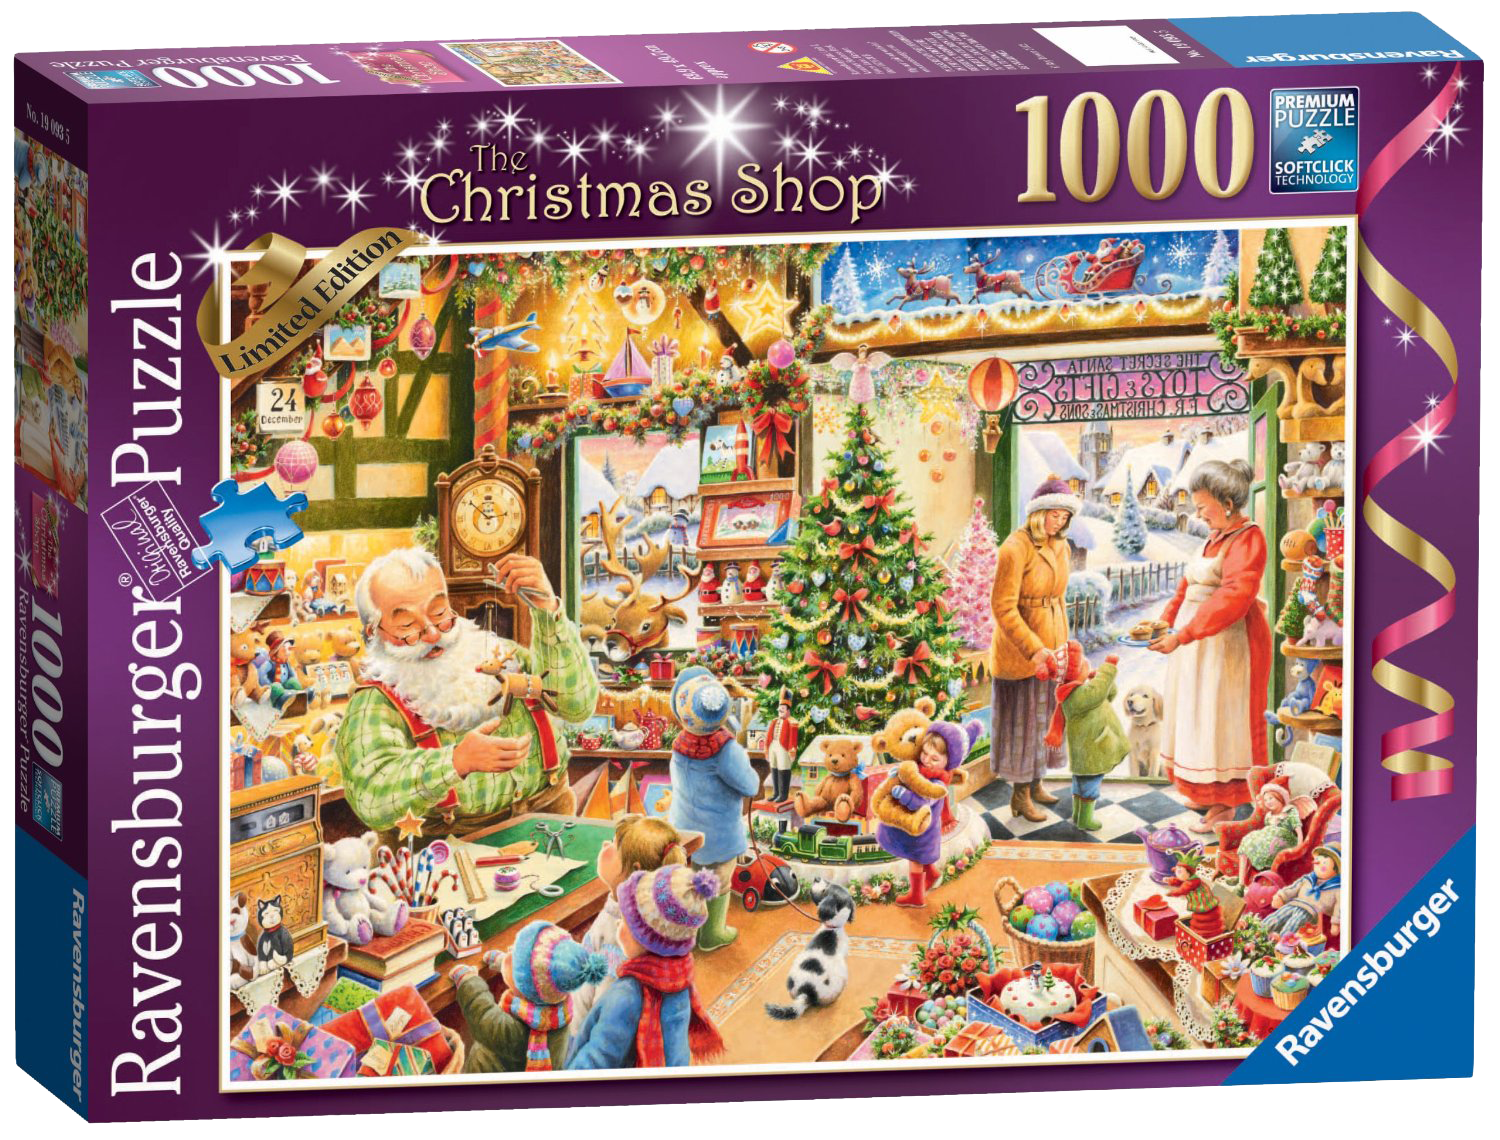 Ravensburger Limited Edition Christmas Puzzles | jigsaw